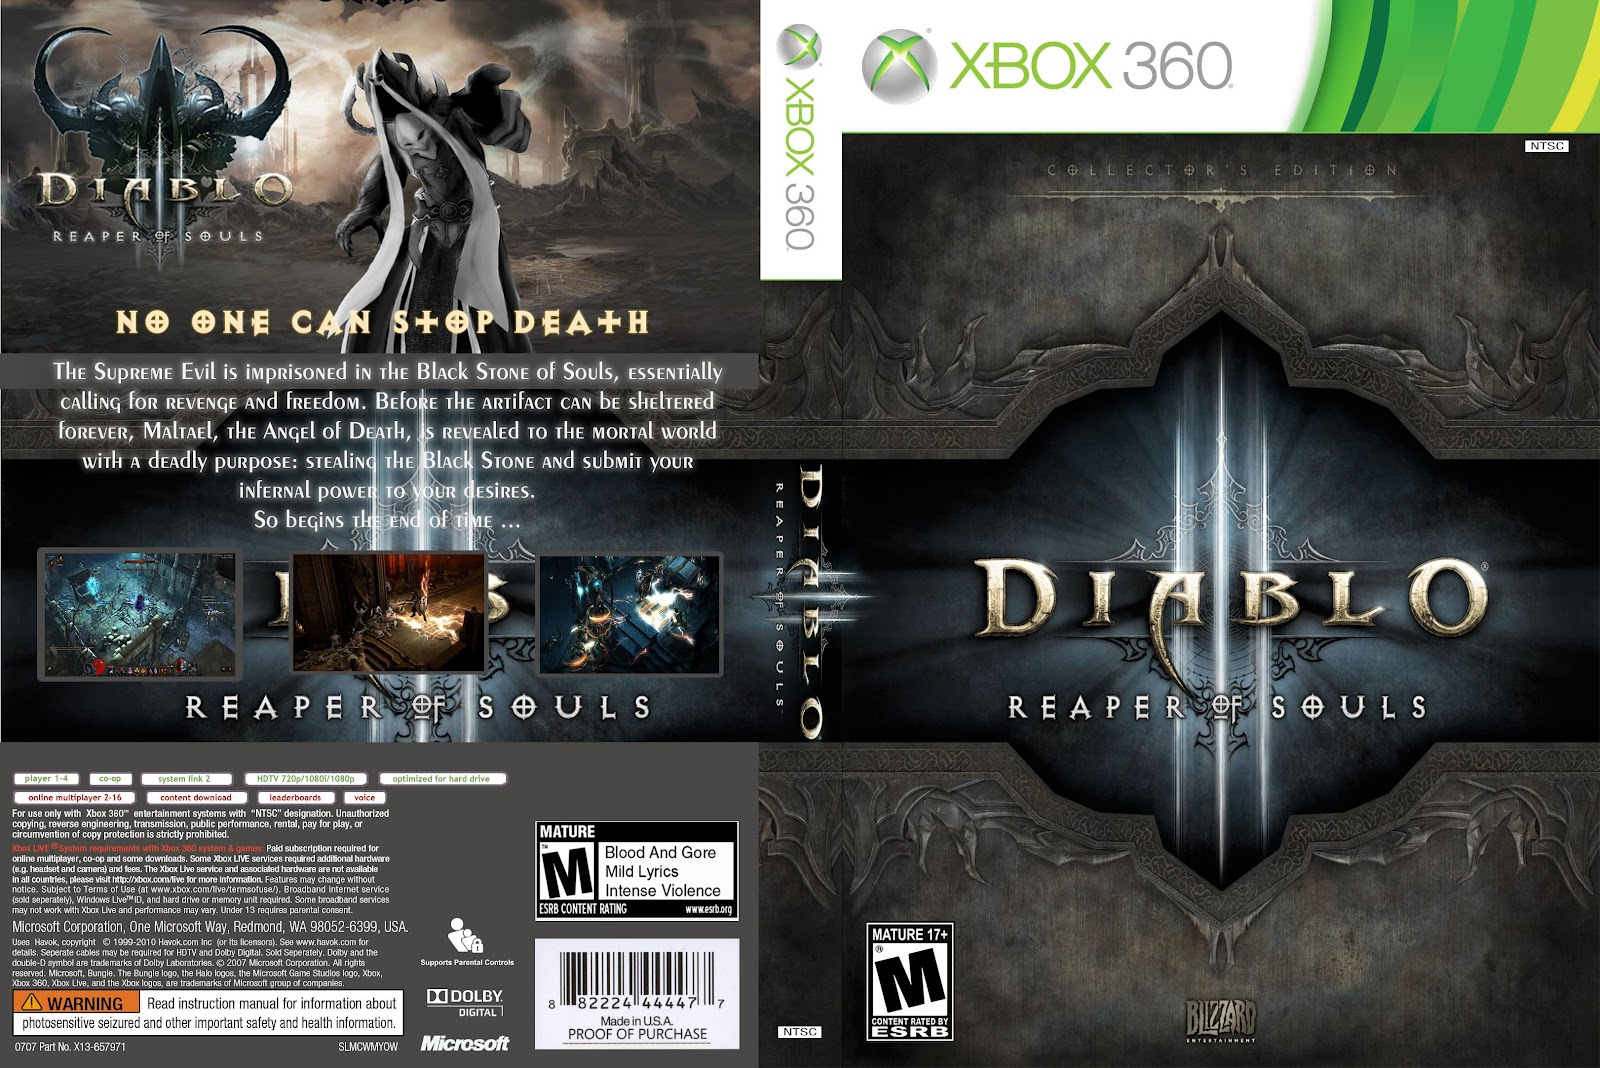 Capa Diablo 3 Reaper Of Souls Collectors Edition Xbox 360